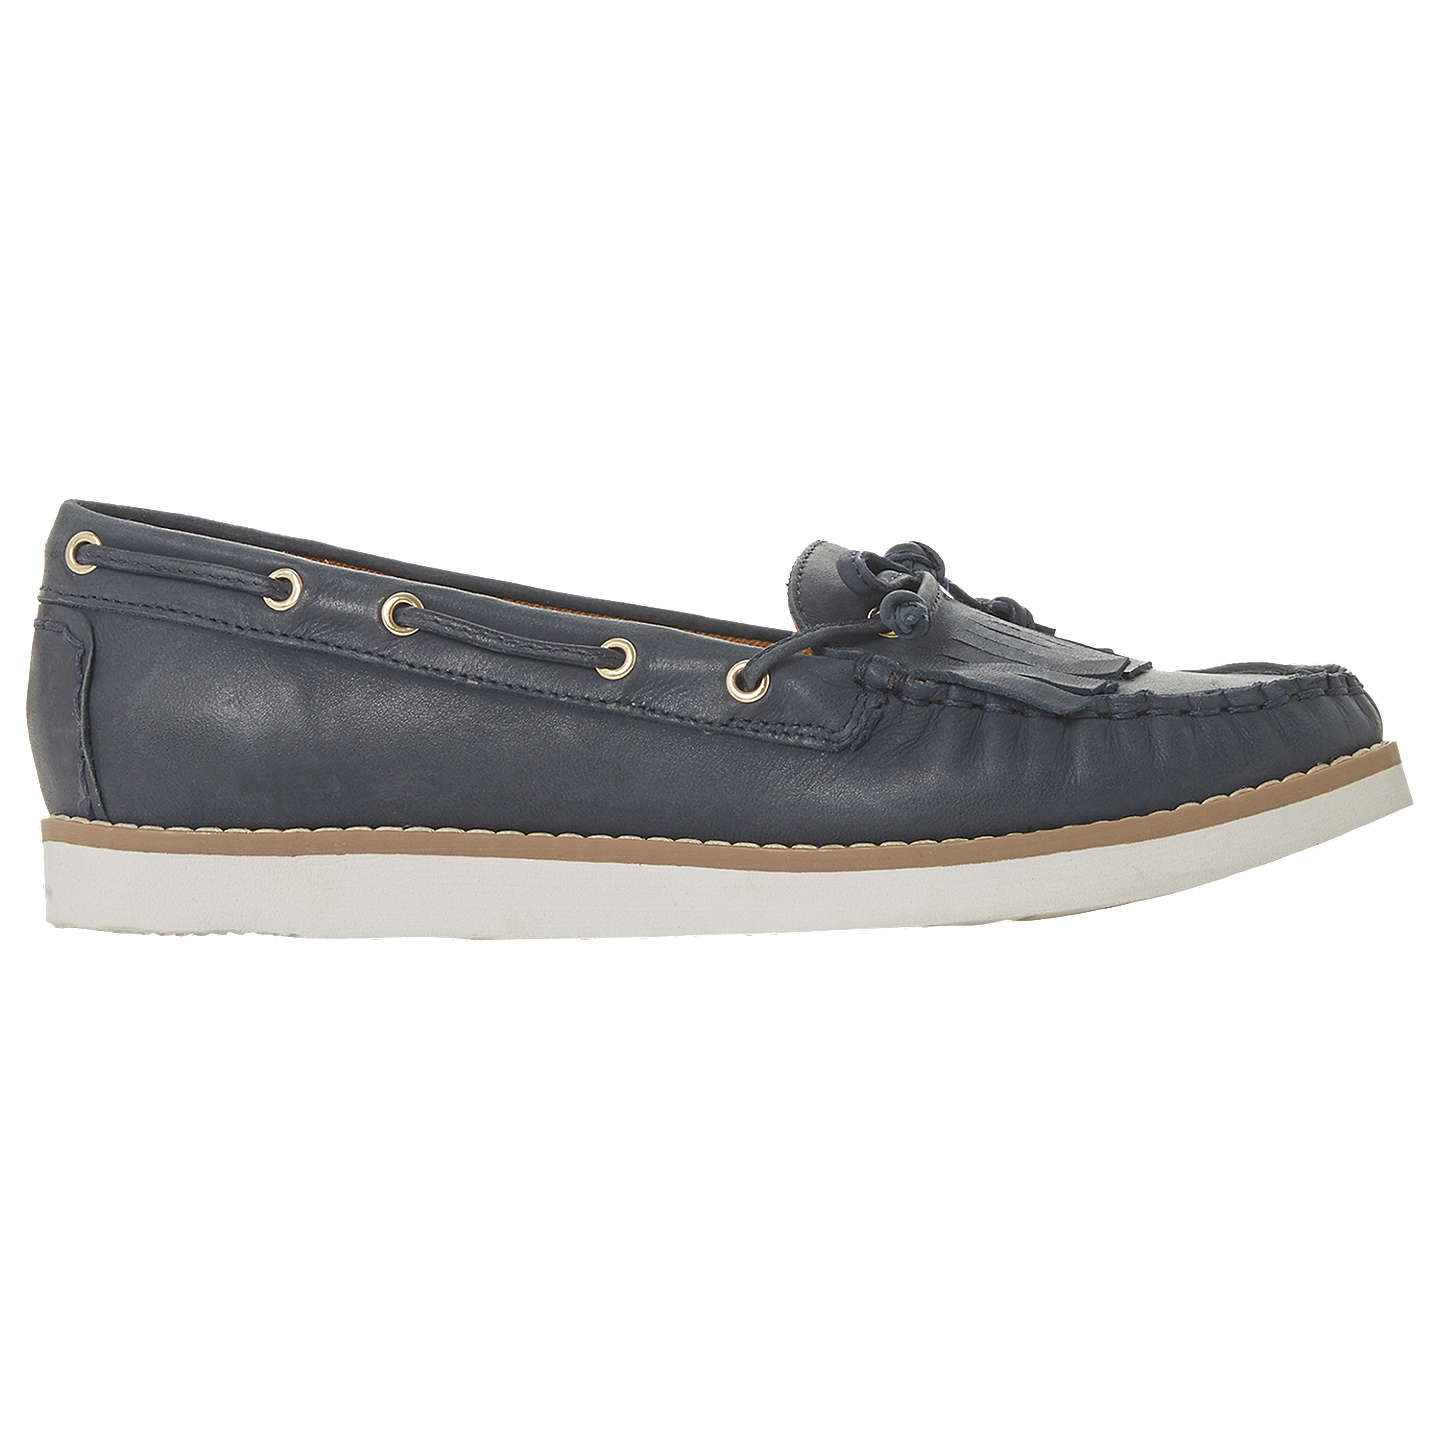 new arrival sale online high quality buy online Navy leather 'Ginney' loafers lL9jdwE